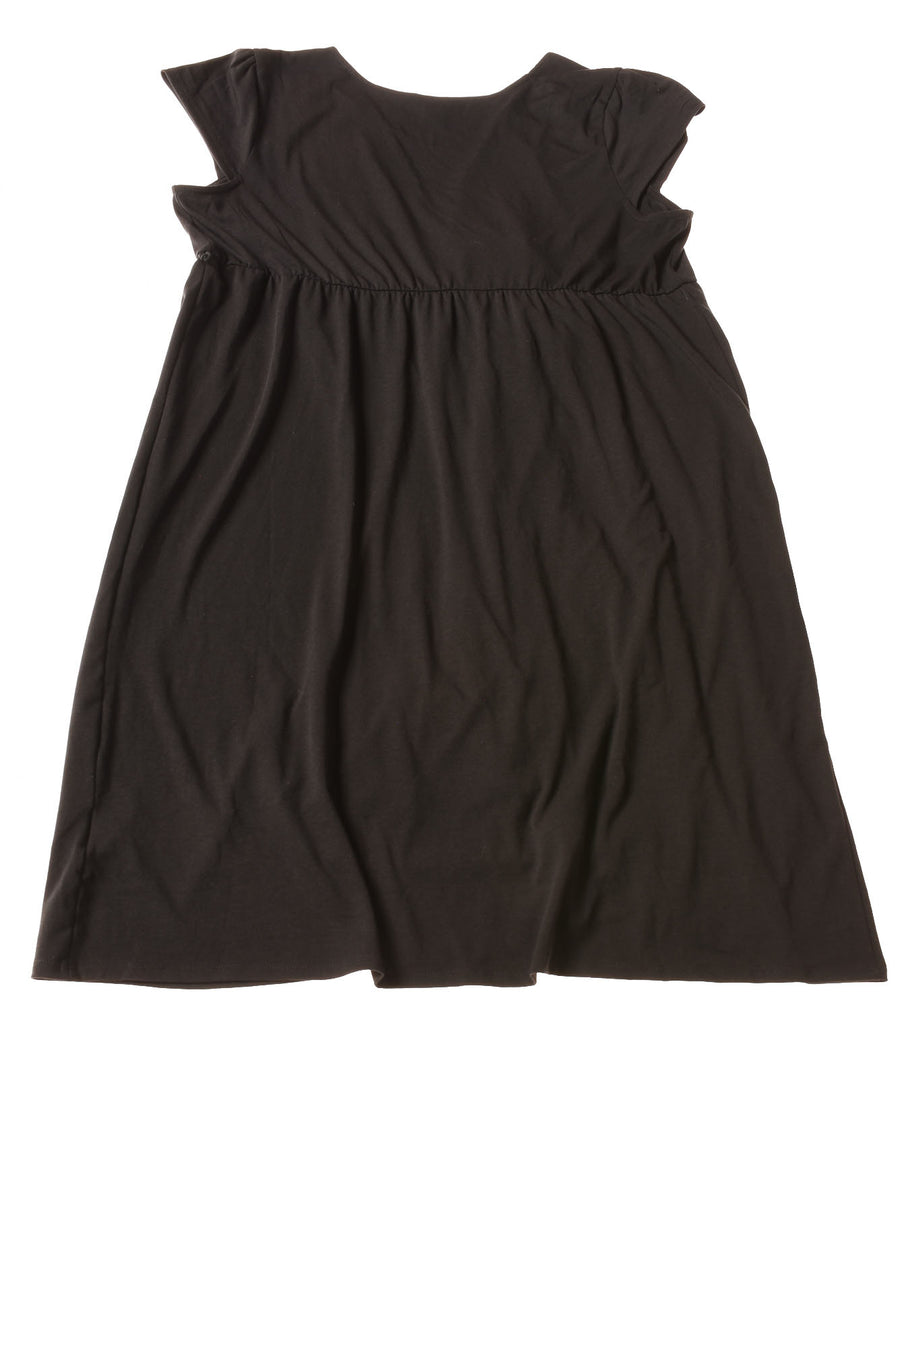 Women's Dress By Old Navy